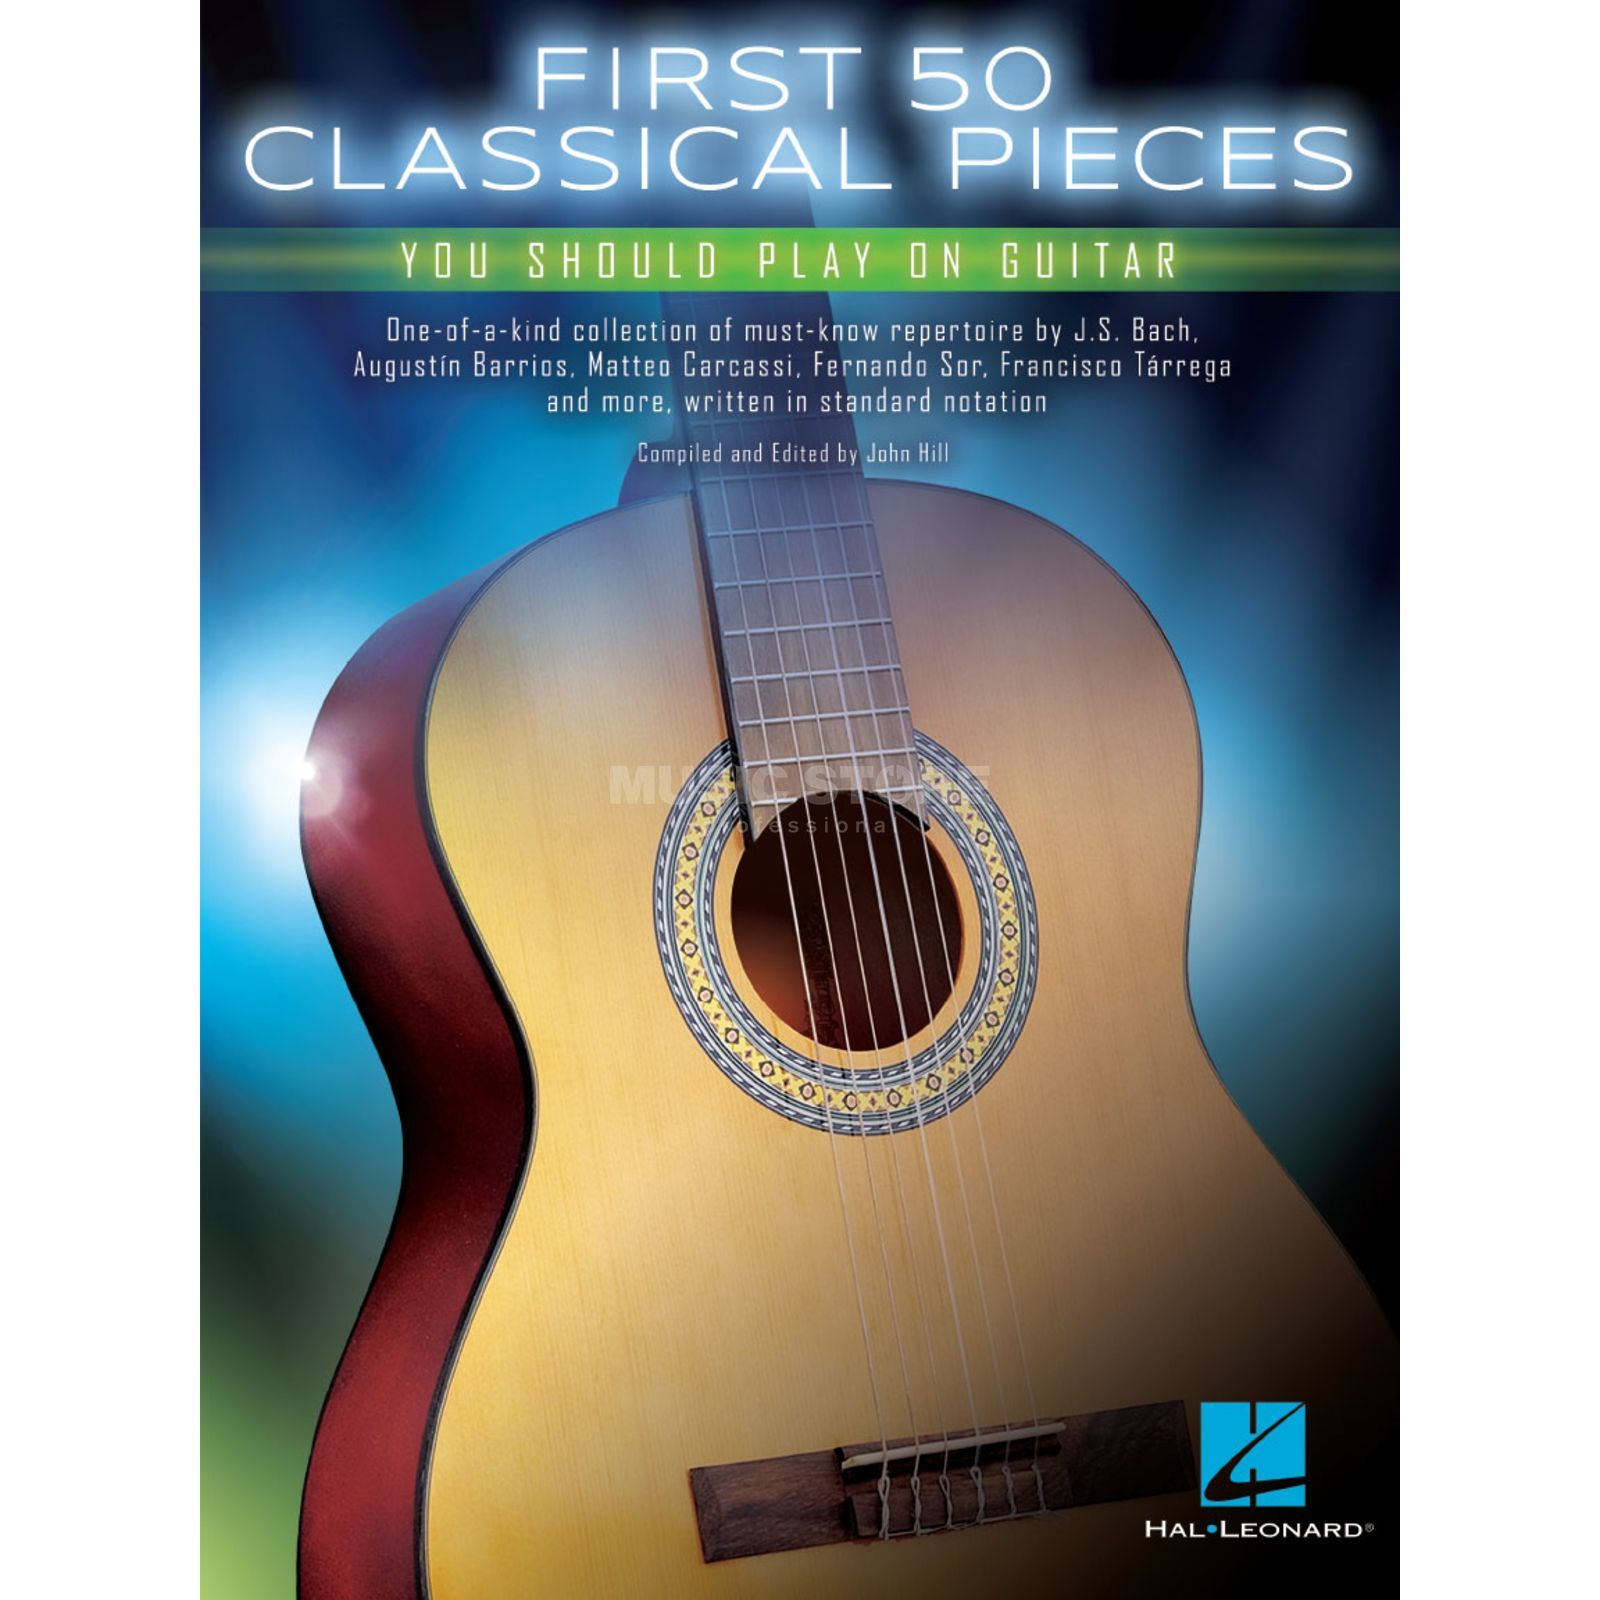 Hal Leonard First 50 Classical Pieces You Should Play On Guitar Produktbillede